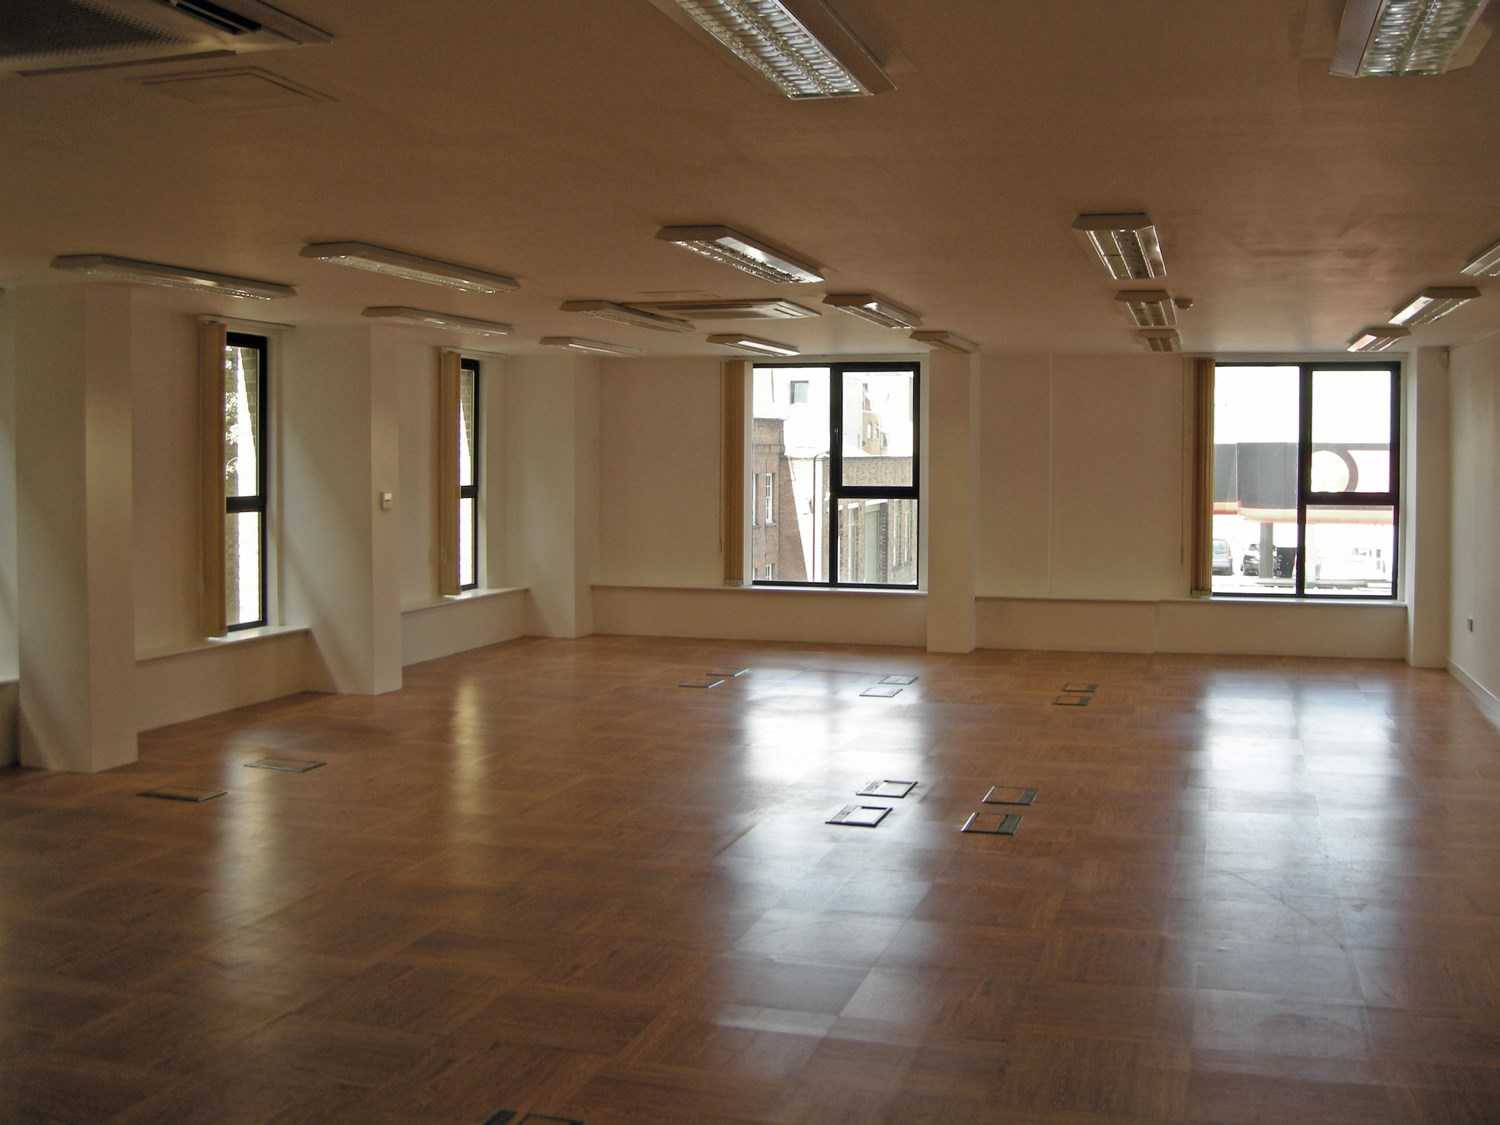 176 179 Shoreditch High Street First Floor Rear Office Internal1 Dominion